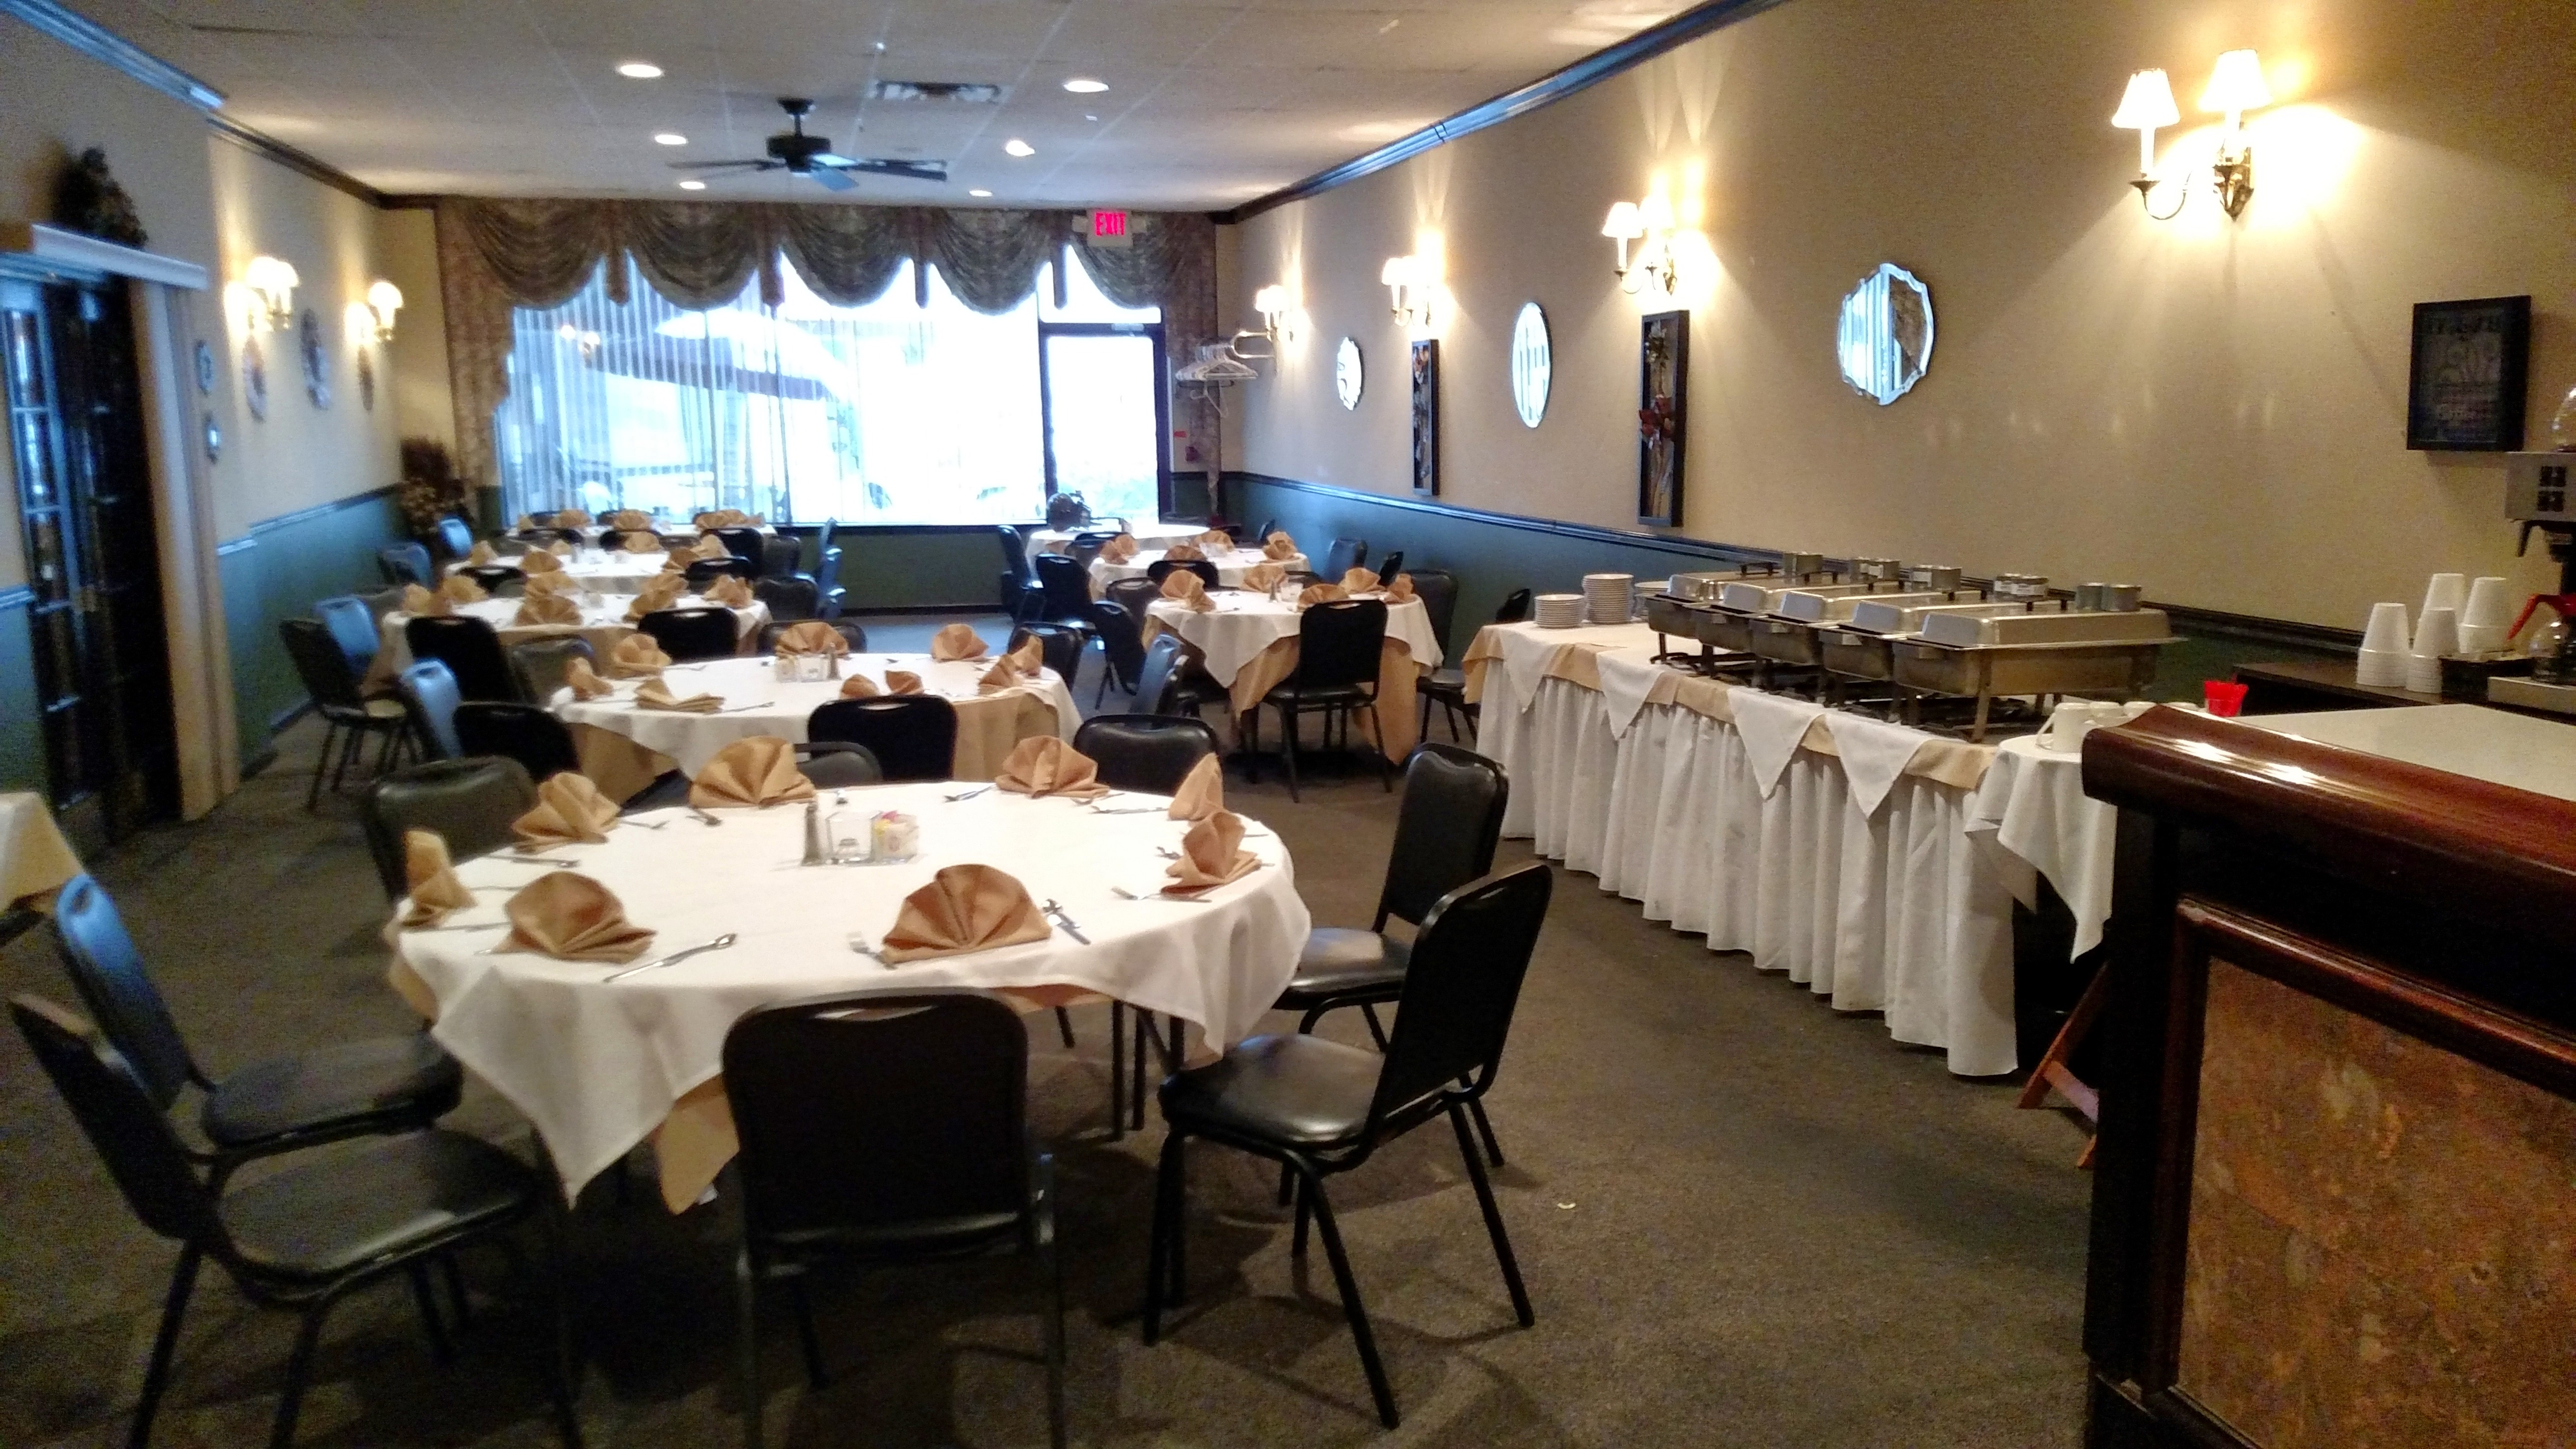 Randi S Restaurant And Bar Hall Rentals In Philadelphia Pa